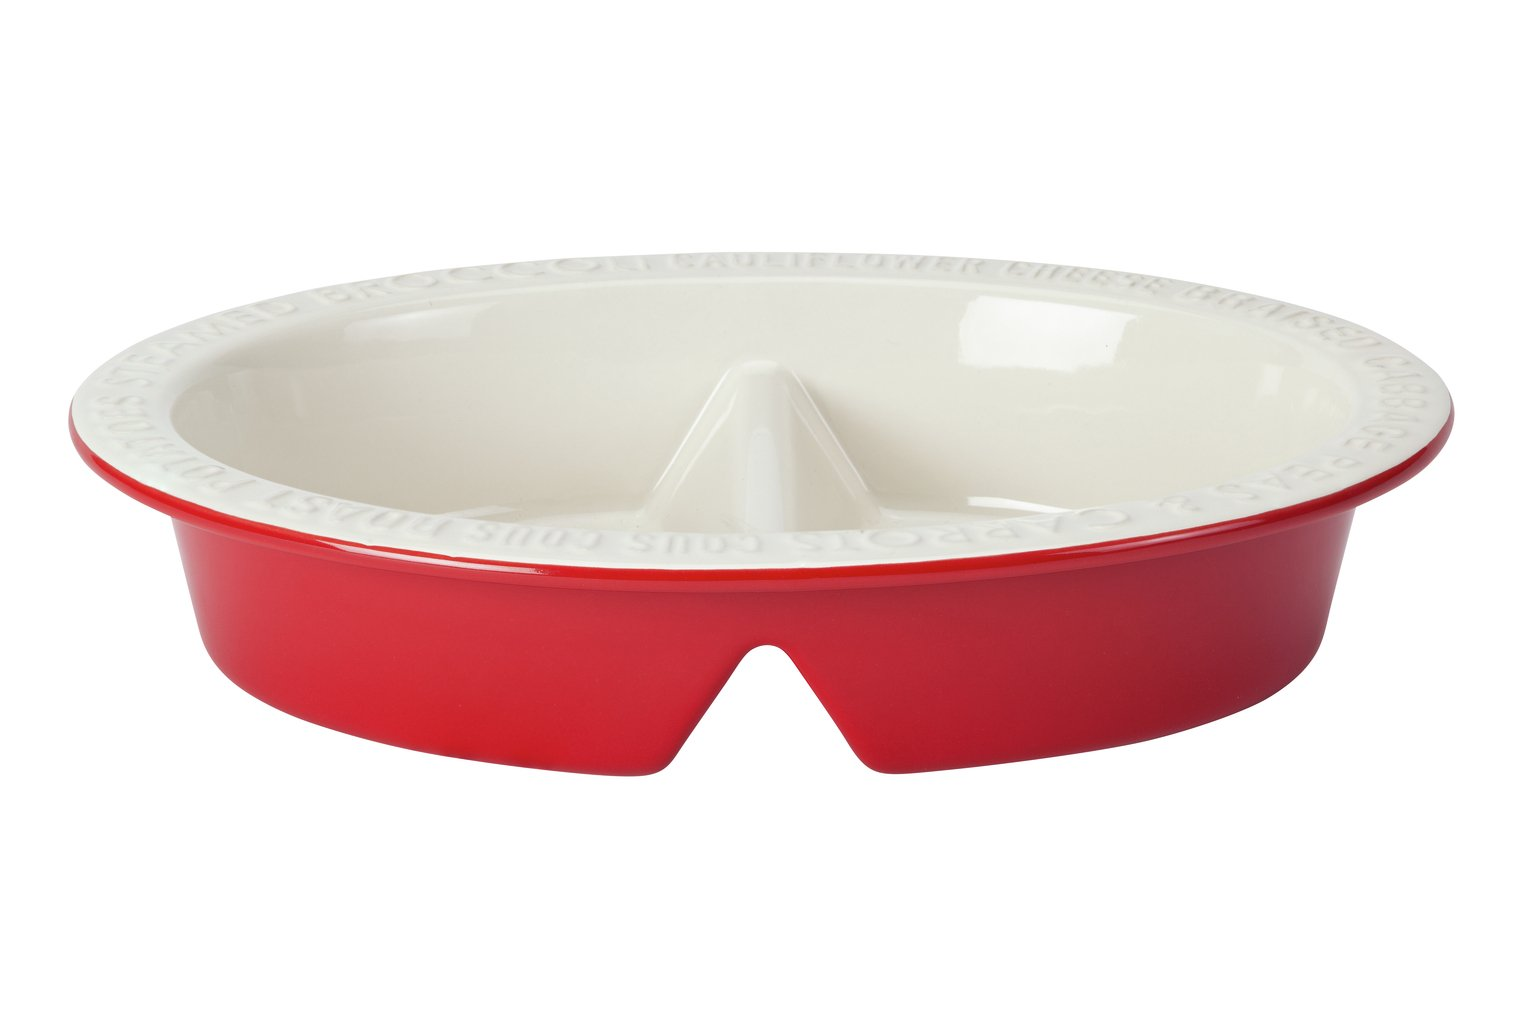 Argos Home Oval Divided Dish